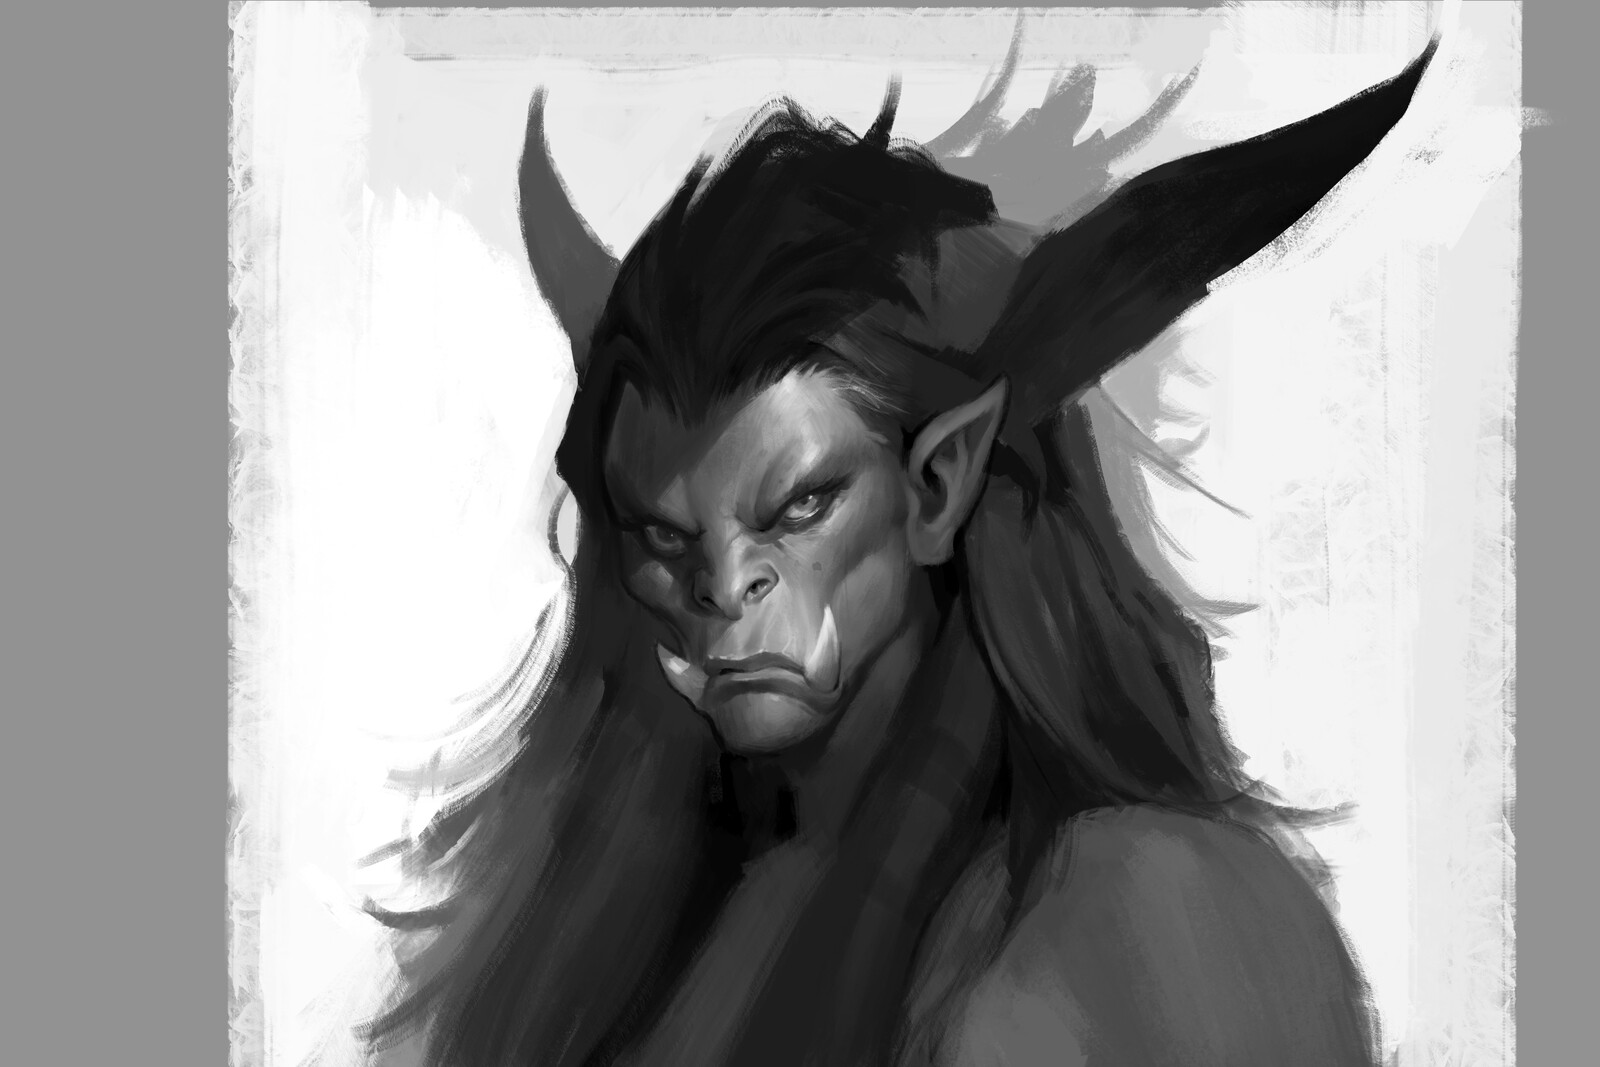 Personal WIP